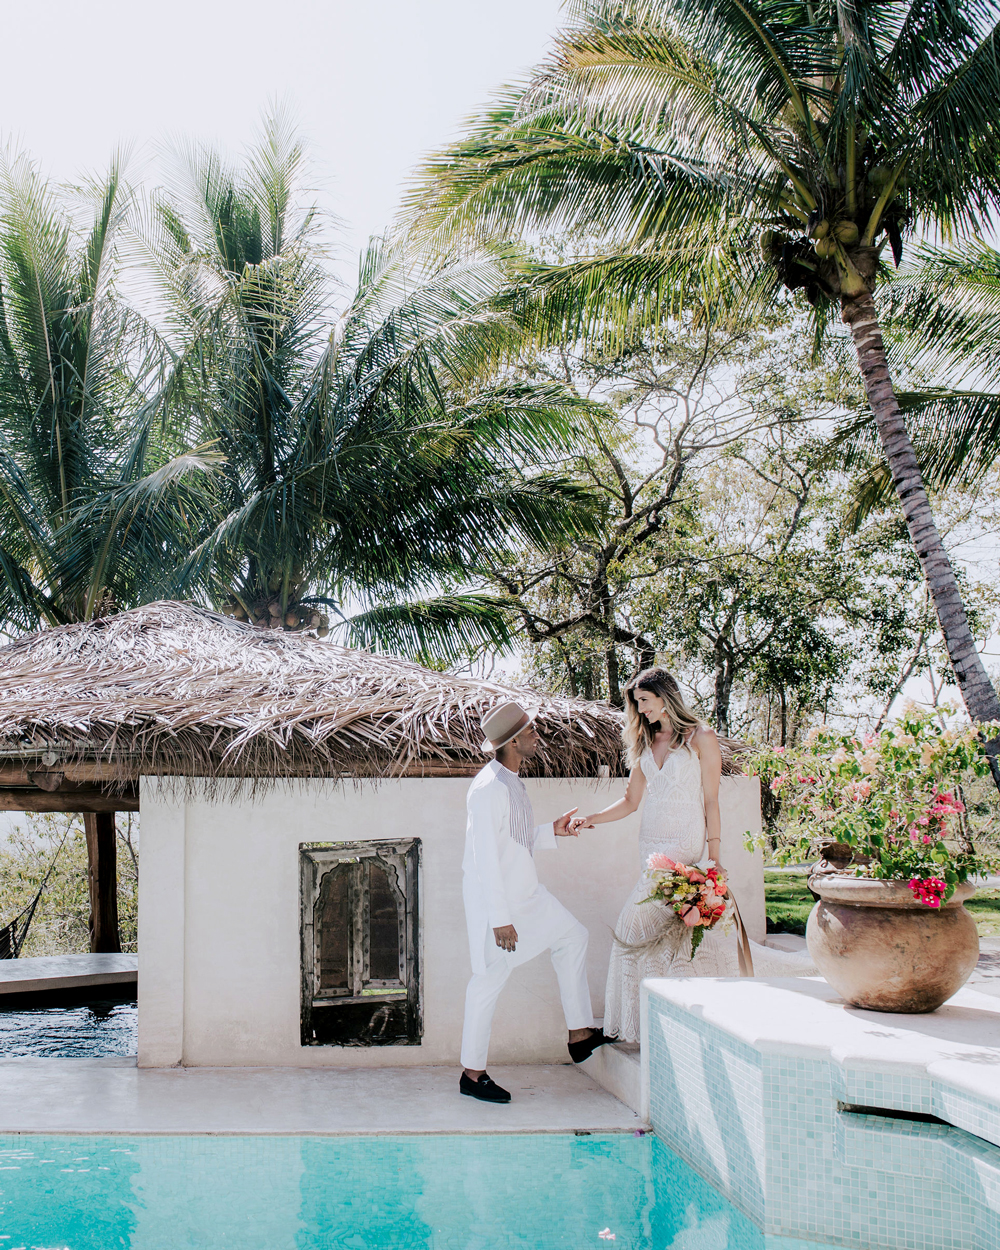 bride and groom share first look before ceremony at venue pool